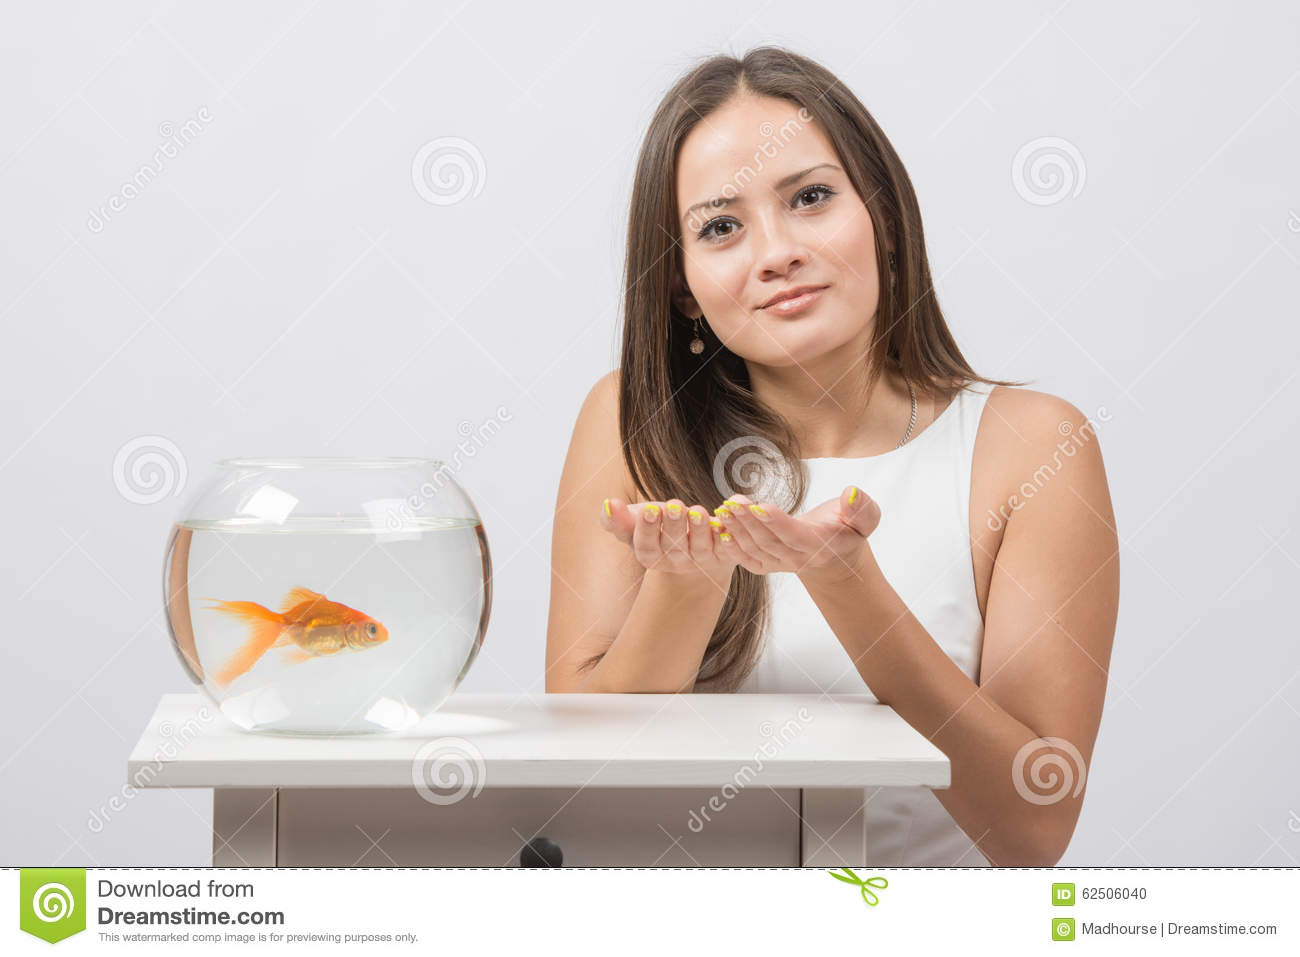 Download She Asks To Fulfill The Desire To Have A Goldfish In An Aquarium Stock Photo - Image of dreams, brown: 62506040